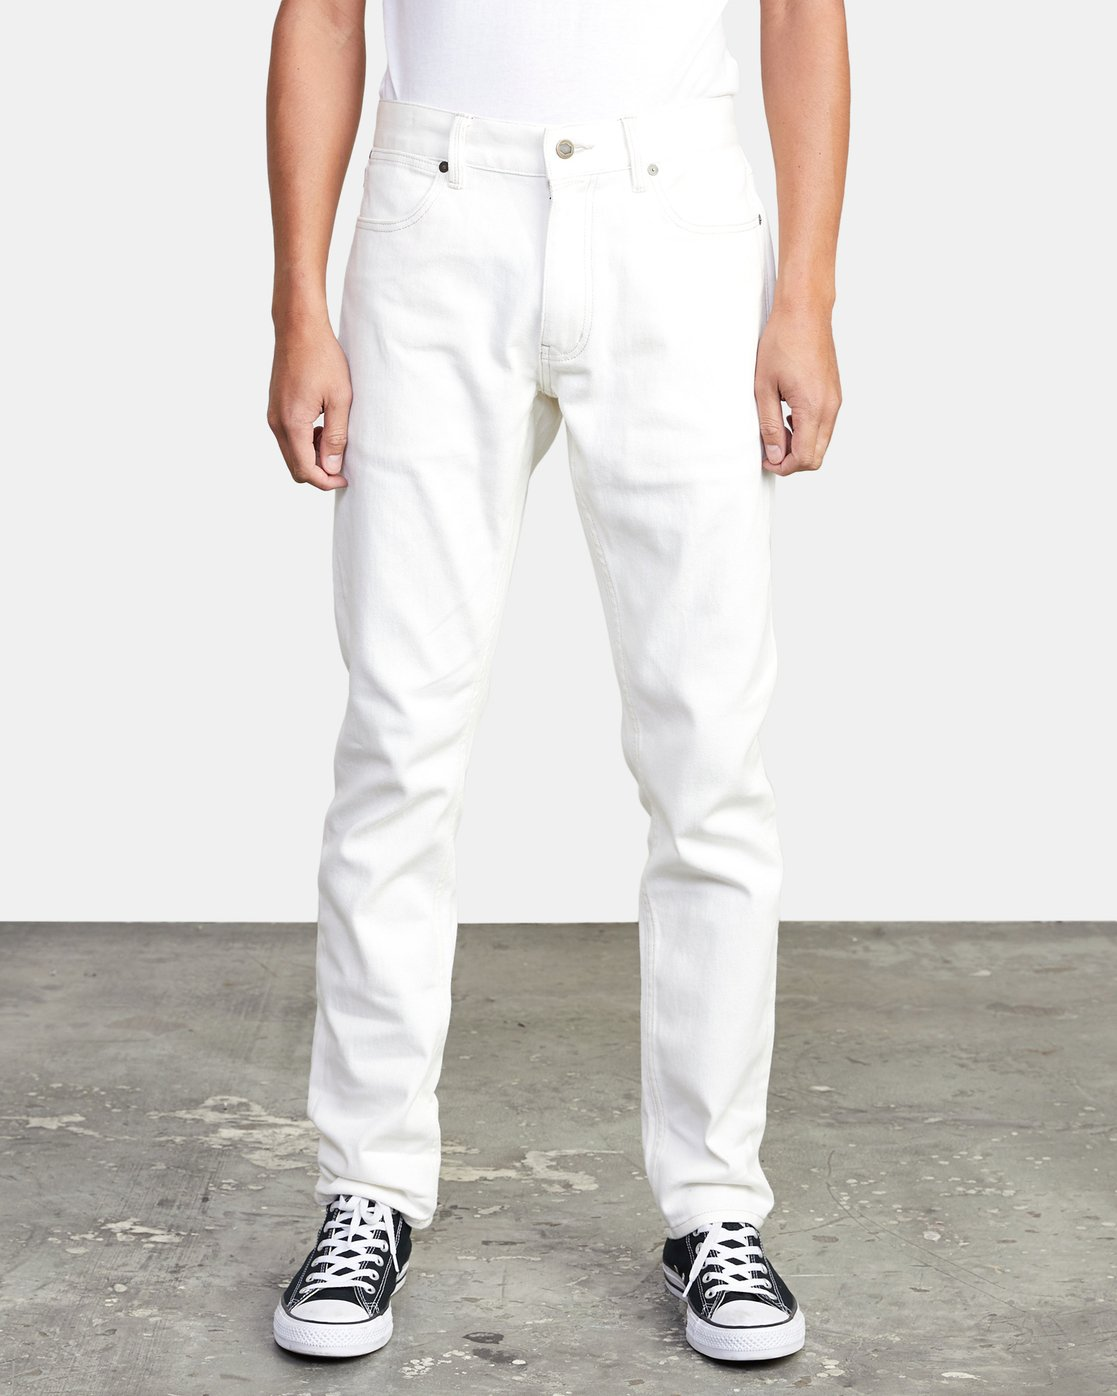 0 DAGGERS SLIM FIT DENIM White M3113RDA RVCA